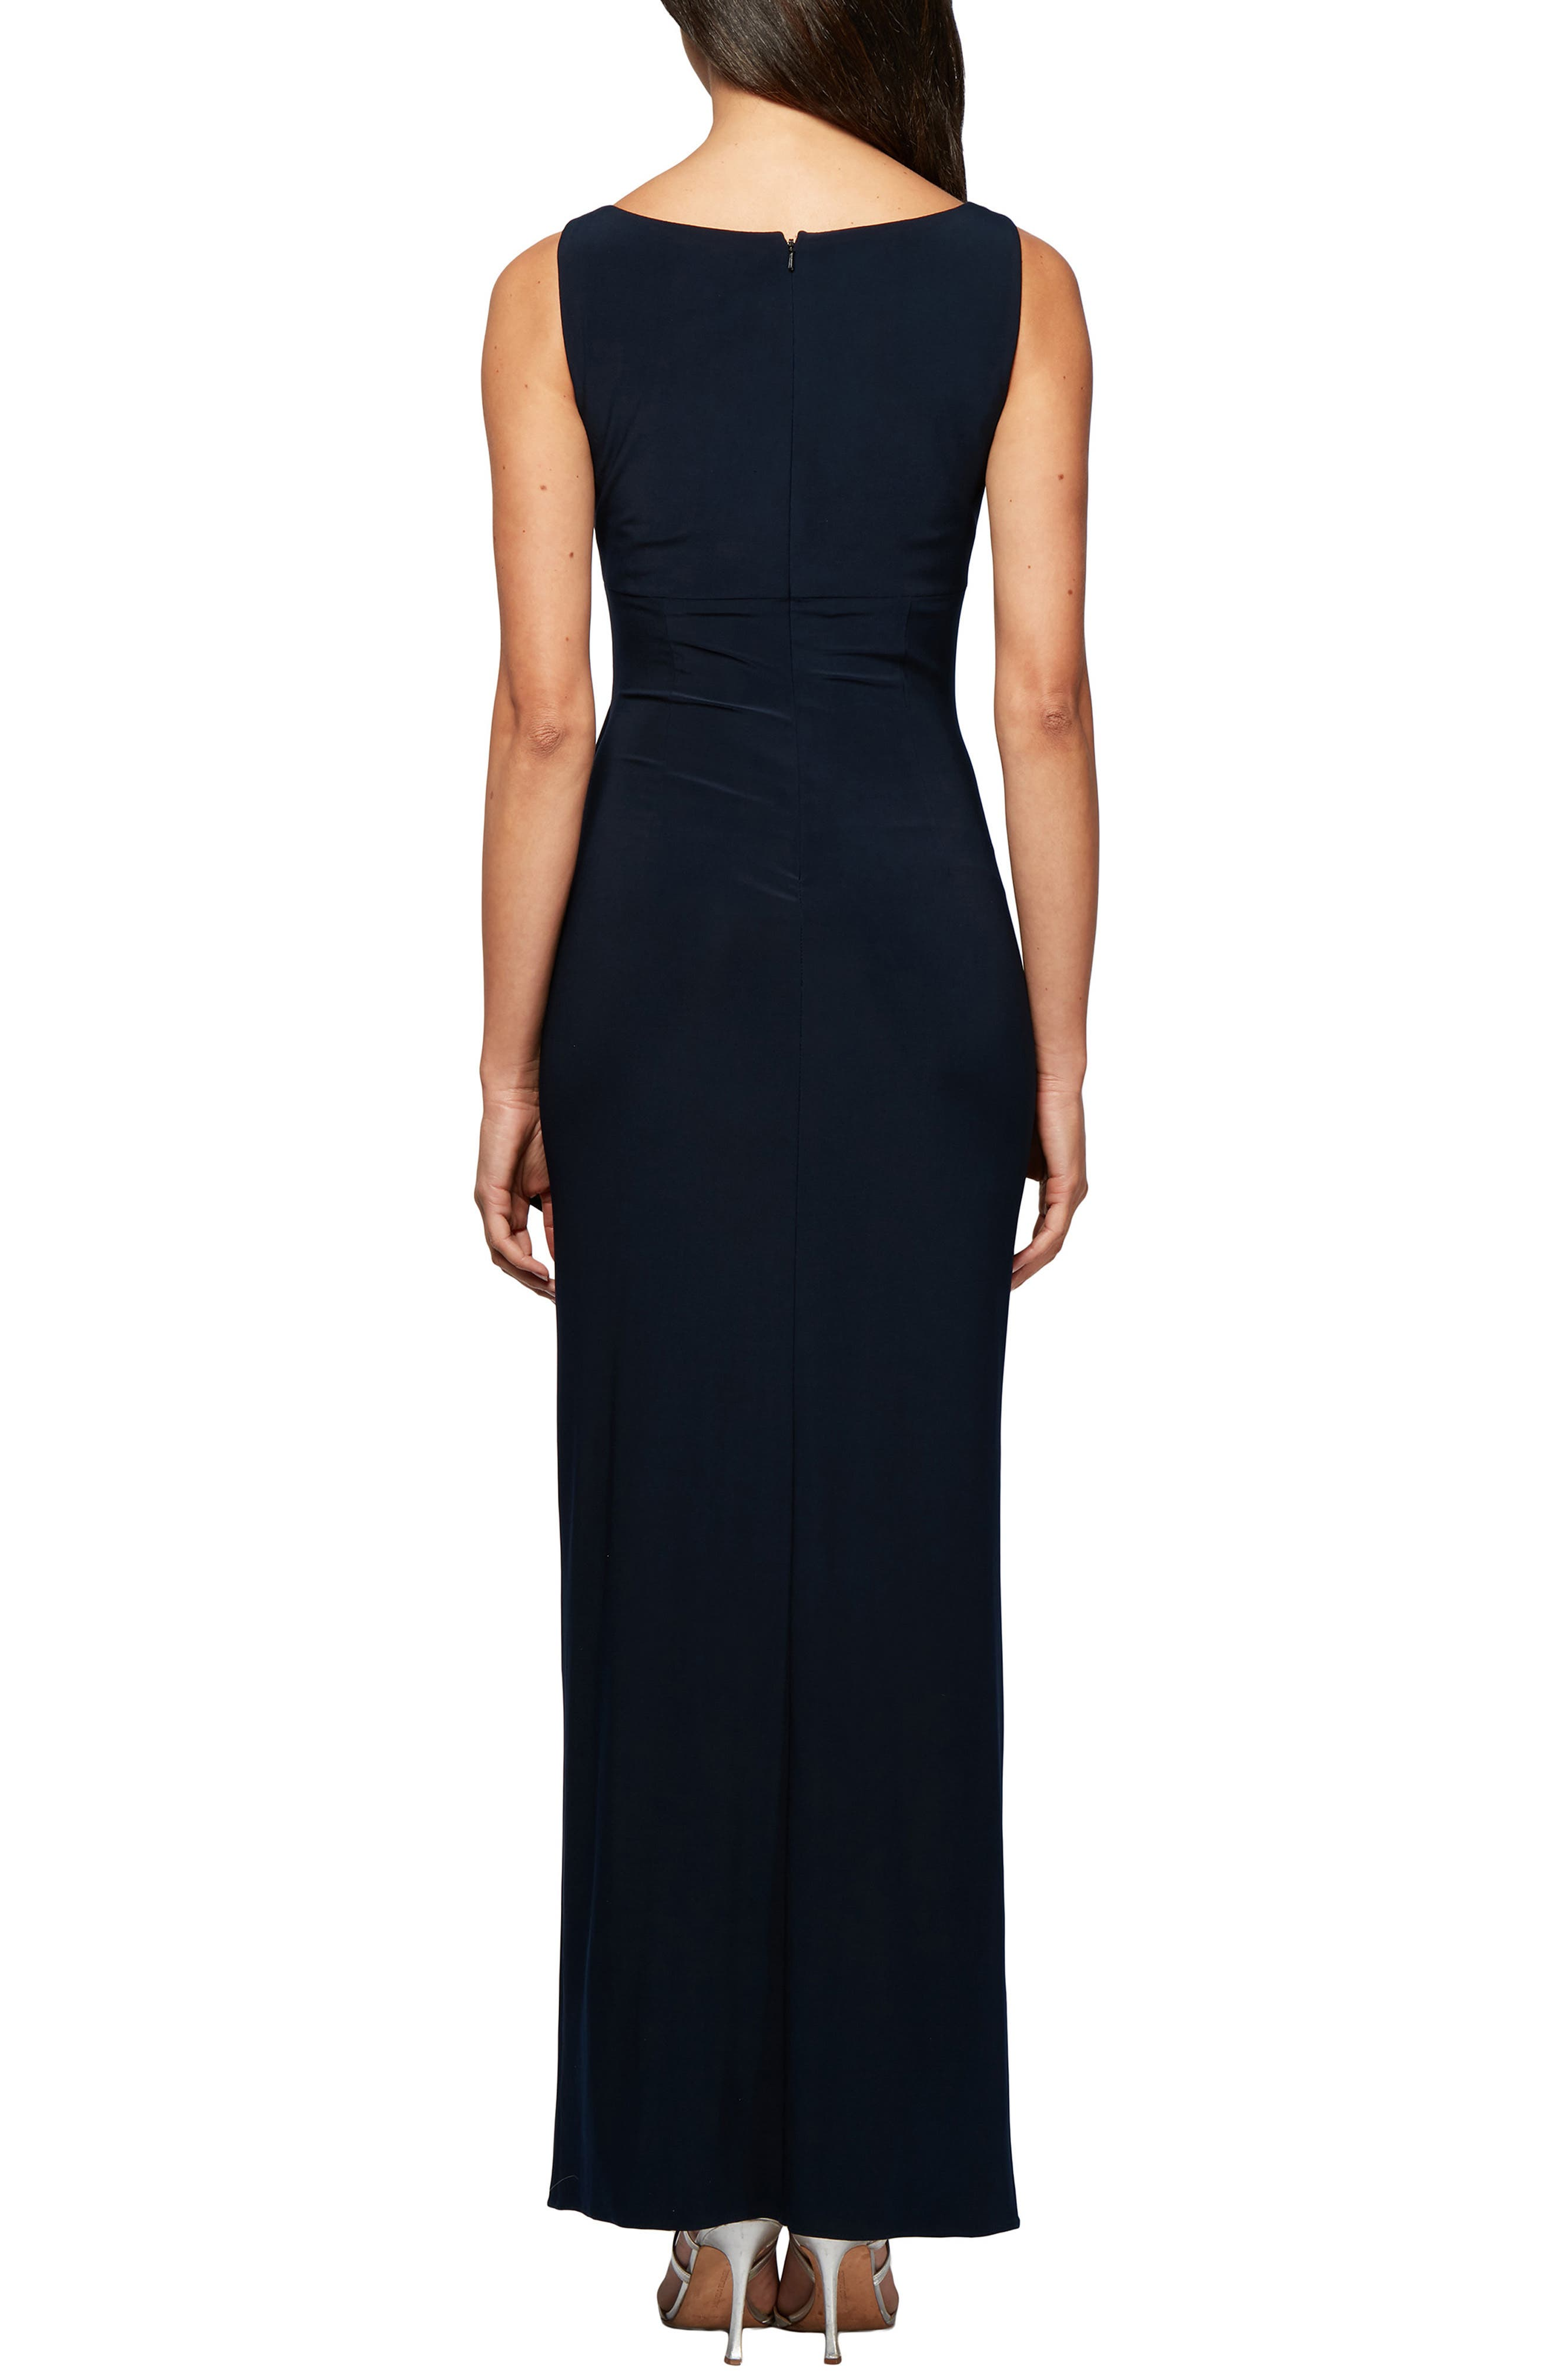 ALEX EVENINGS, Side Ruched Evening Dress with Bolero, Alternate thumbnail 4, color, 410